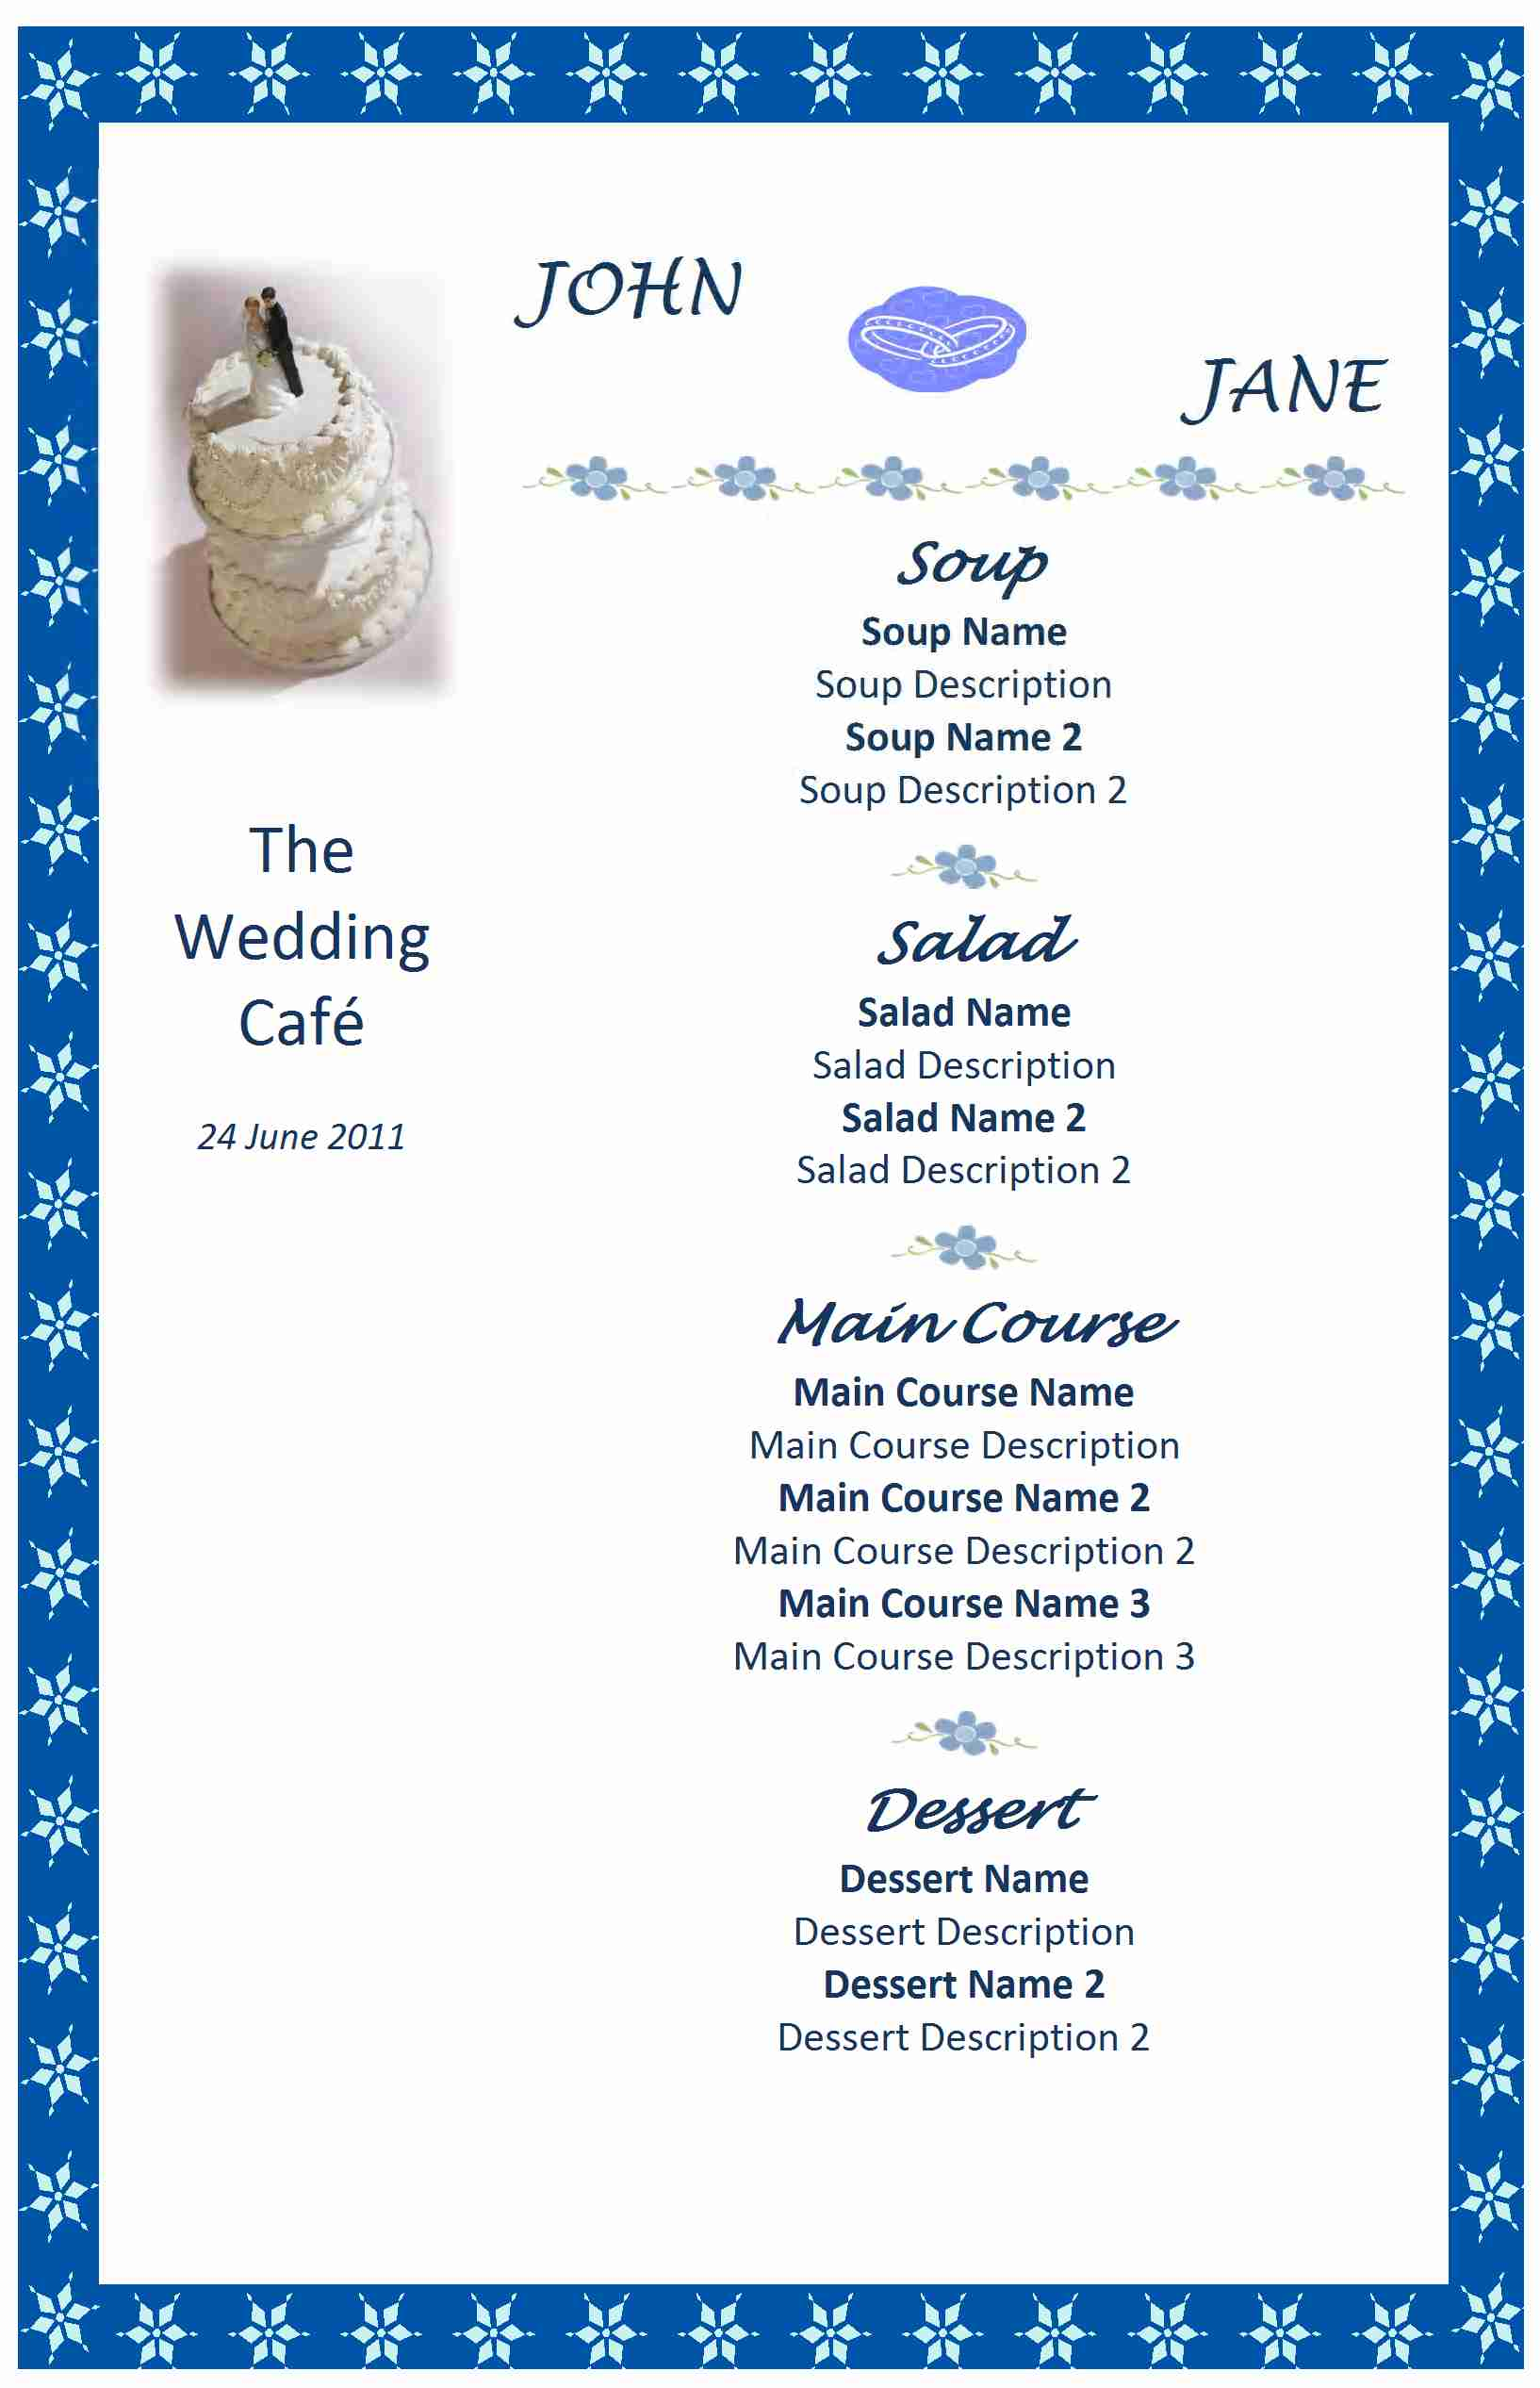 Wedding Menu | Freewordtemplates.net